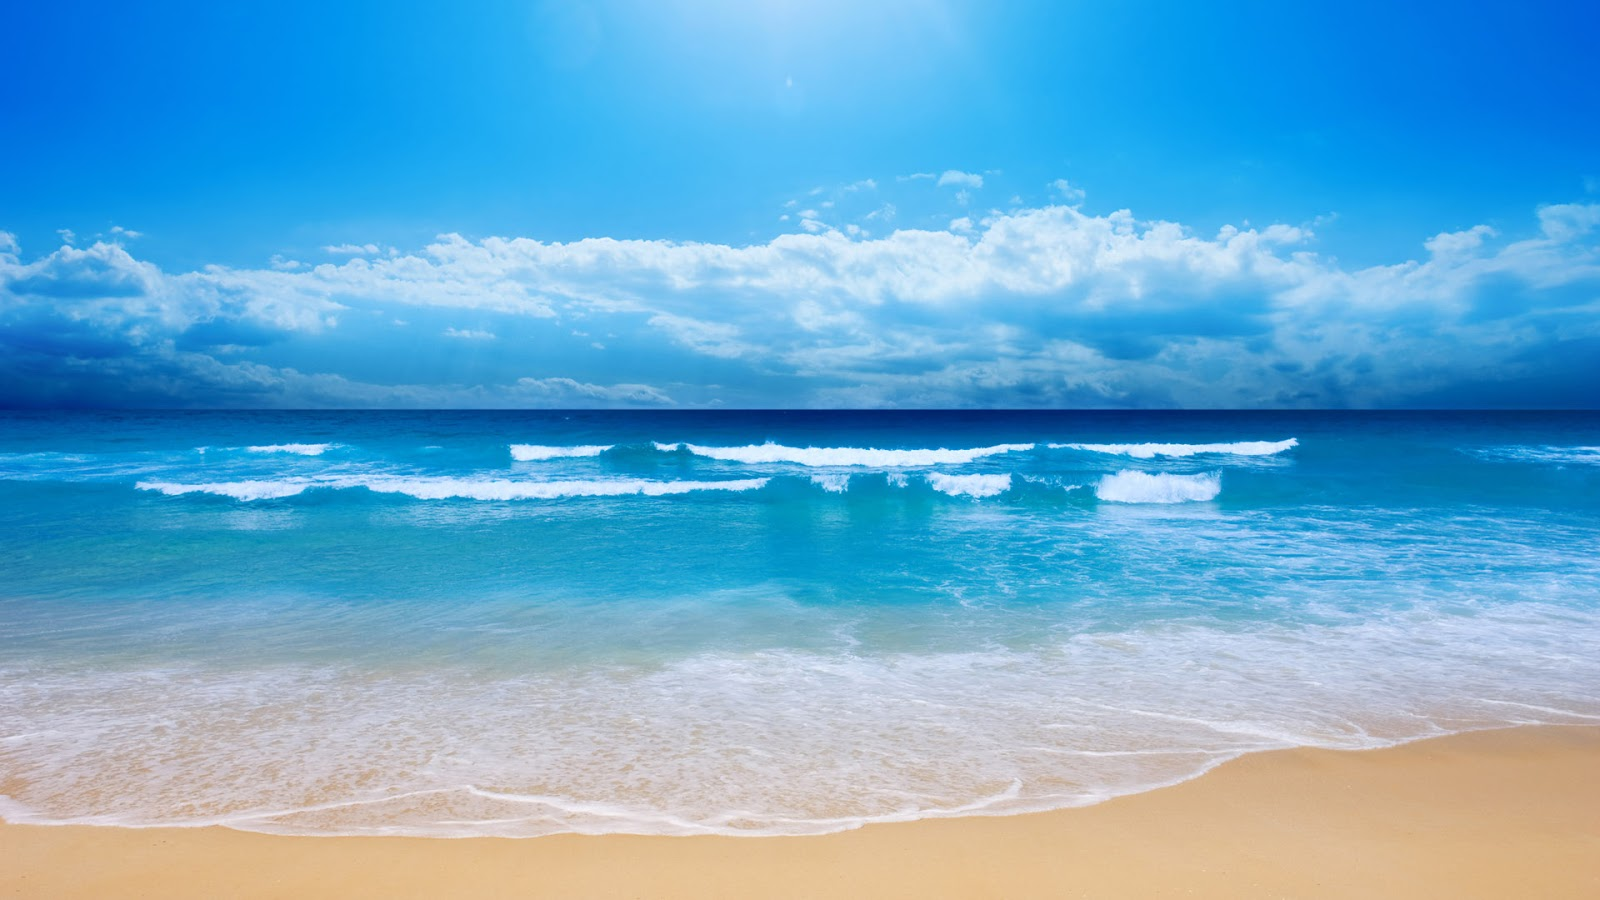 sea beach sand wallpaper 11 - hd wallpaper